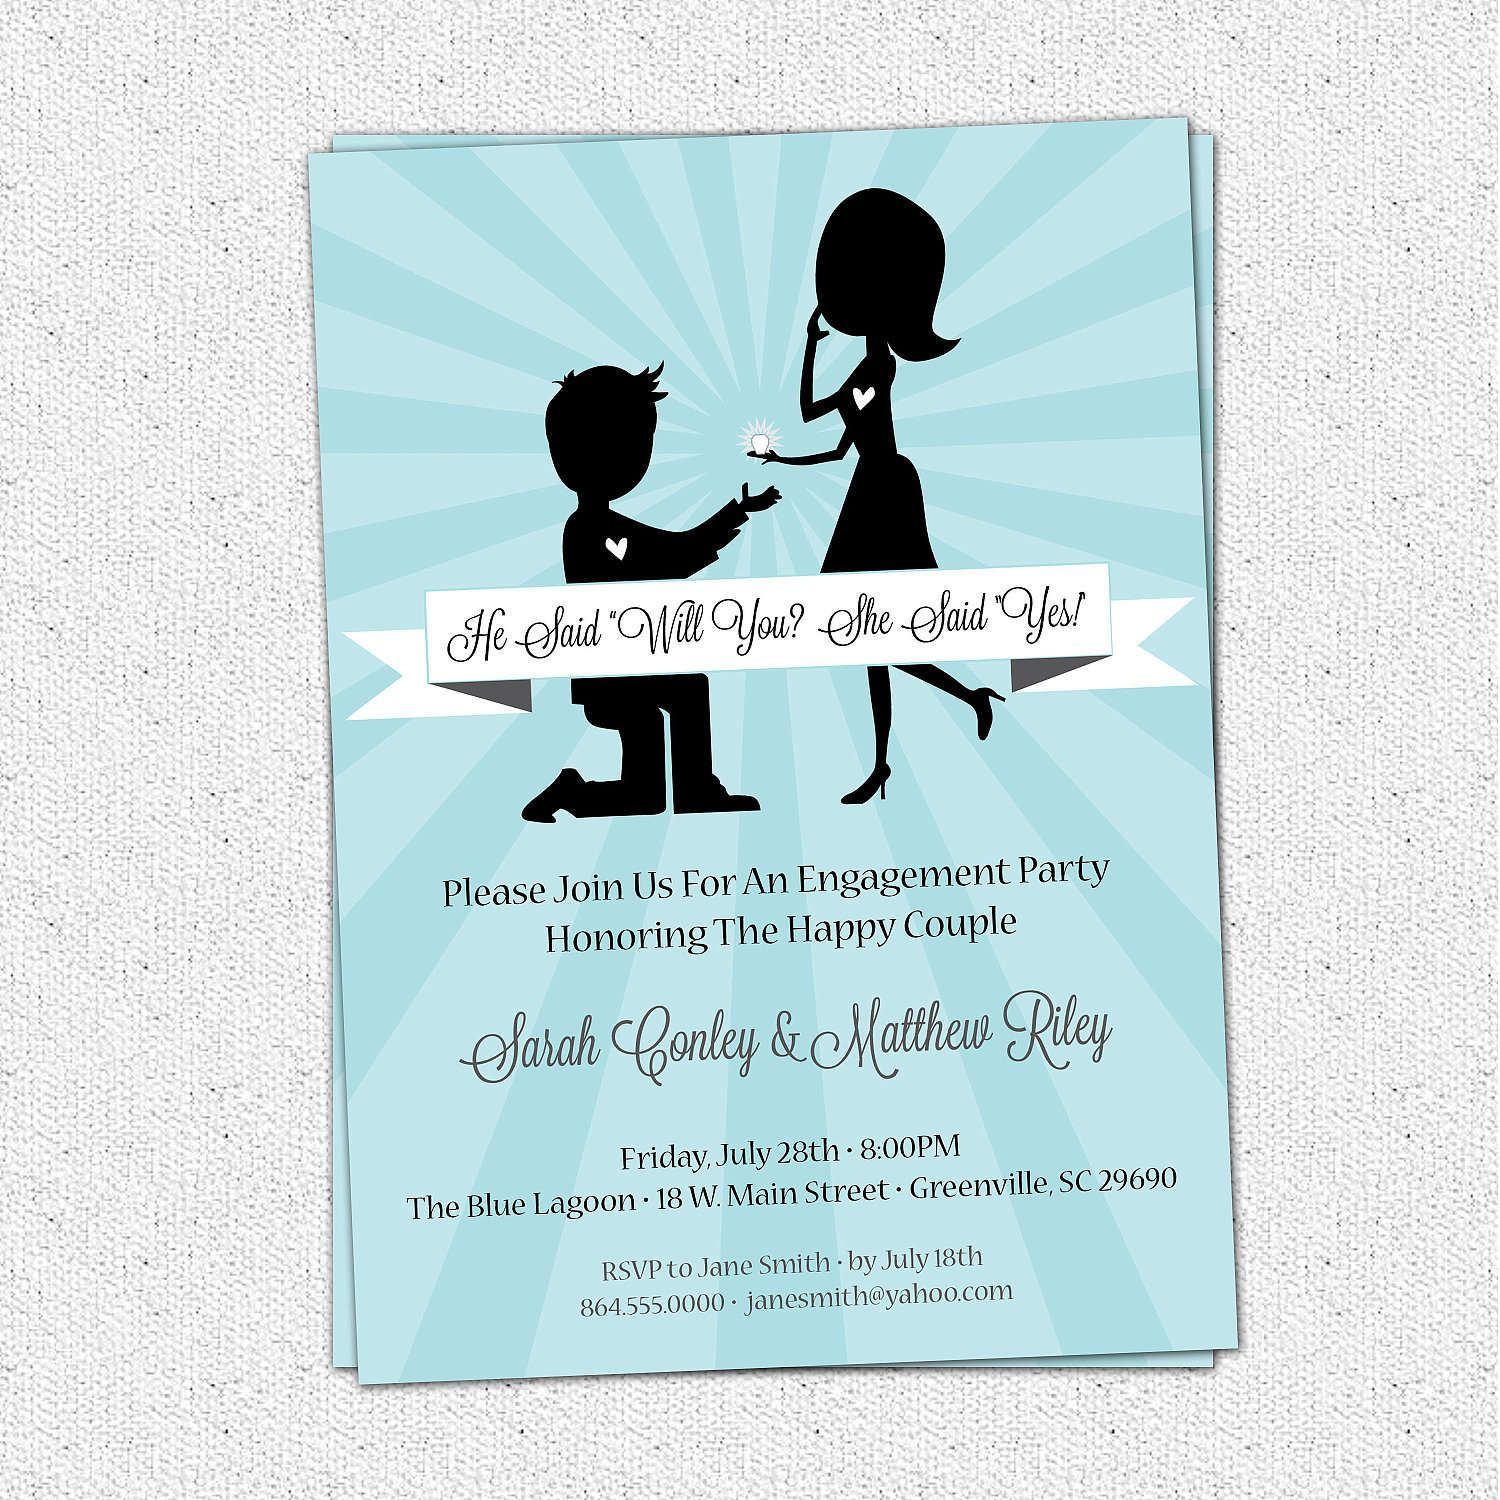 engagement party invitation templates – How to Word Engagement Party Invitations